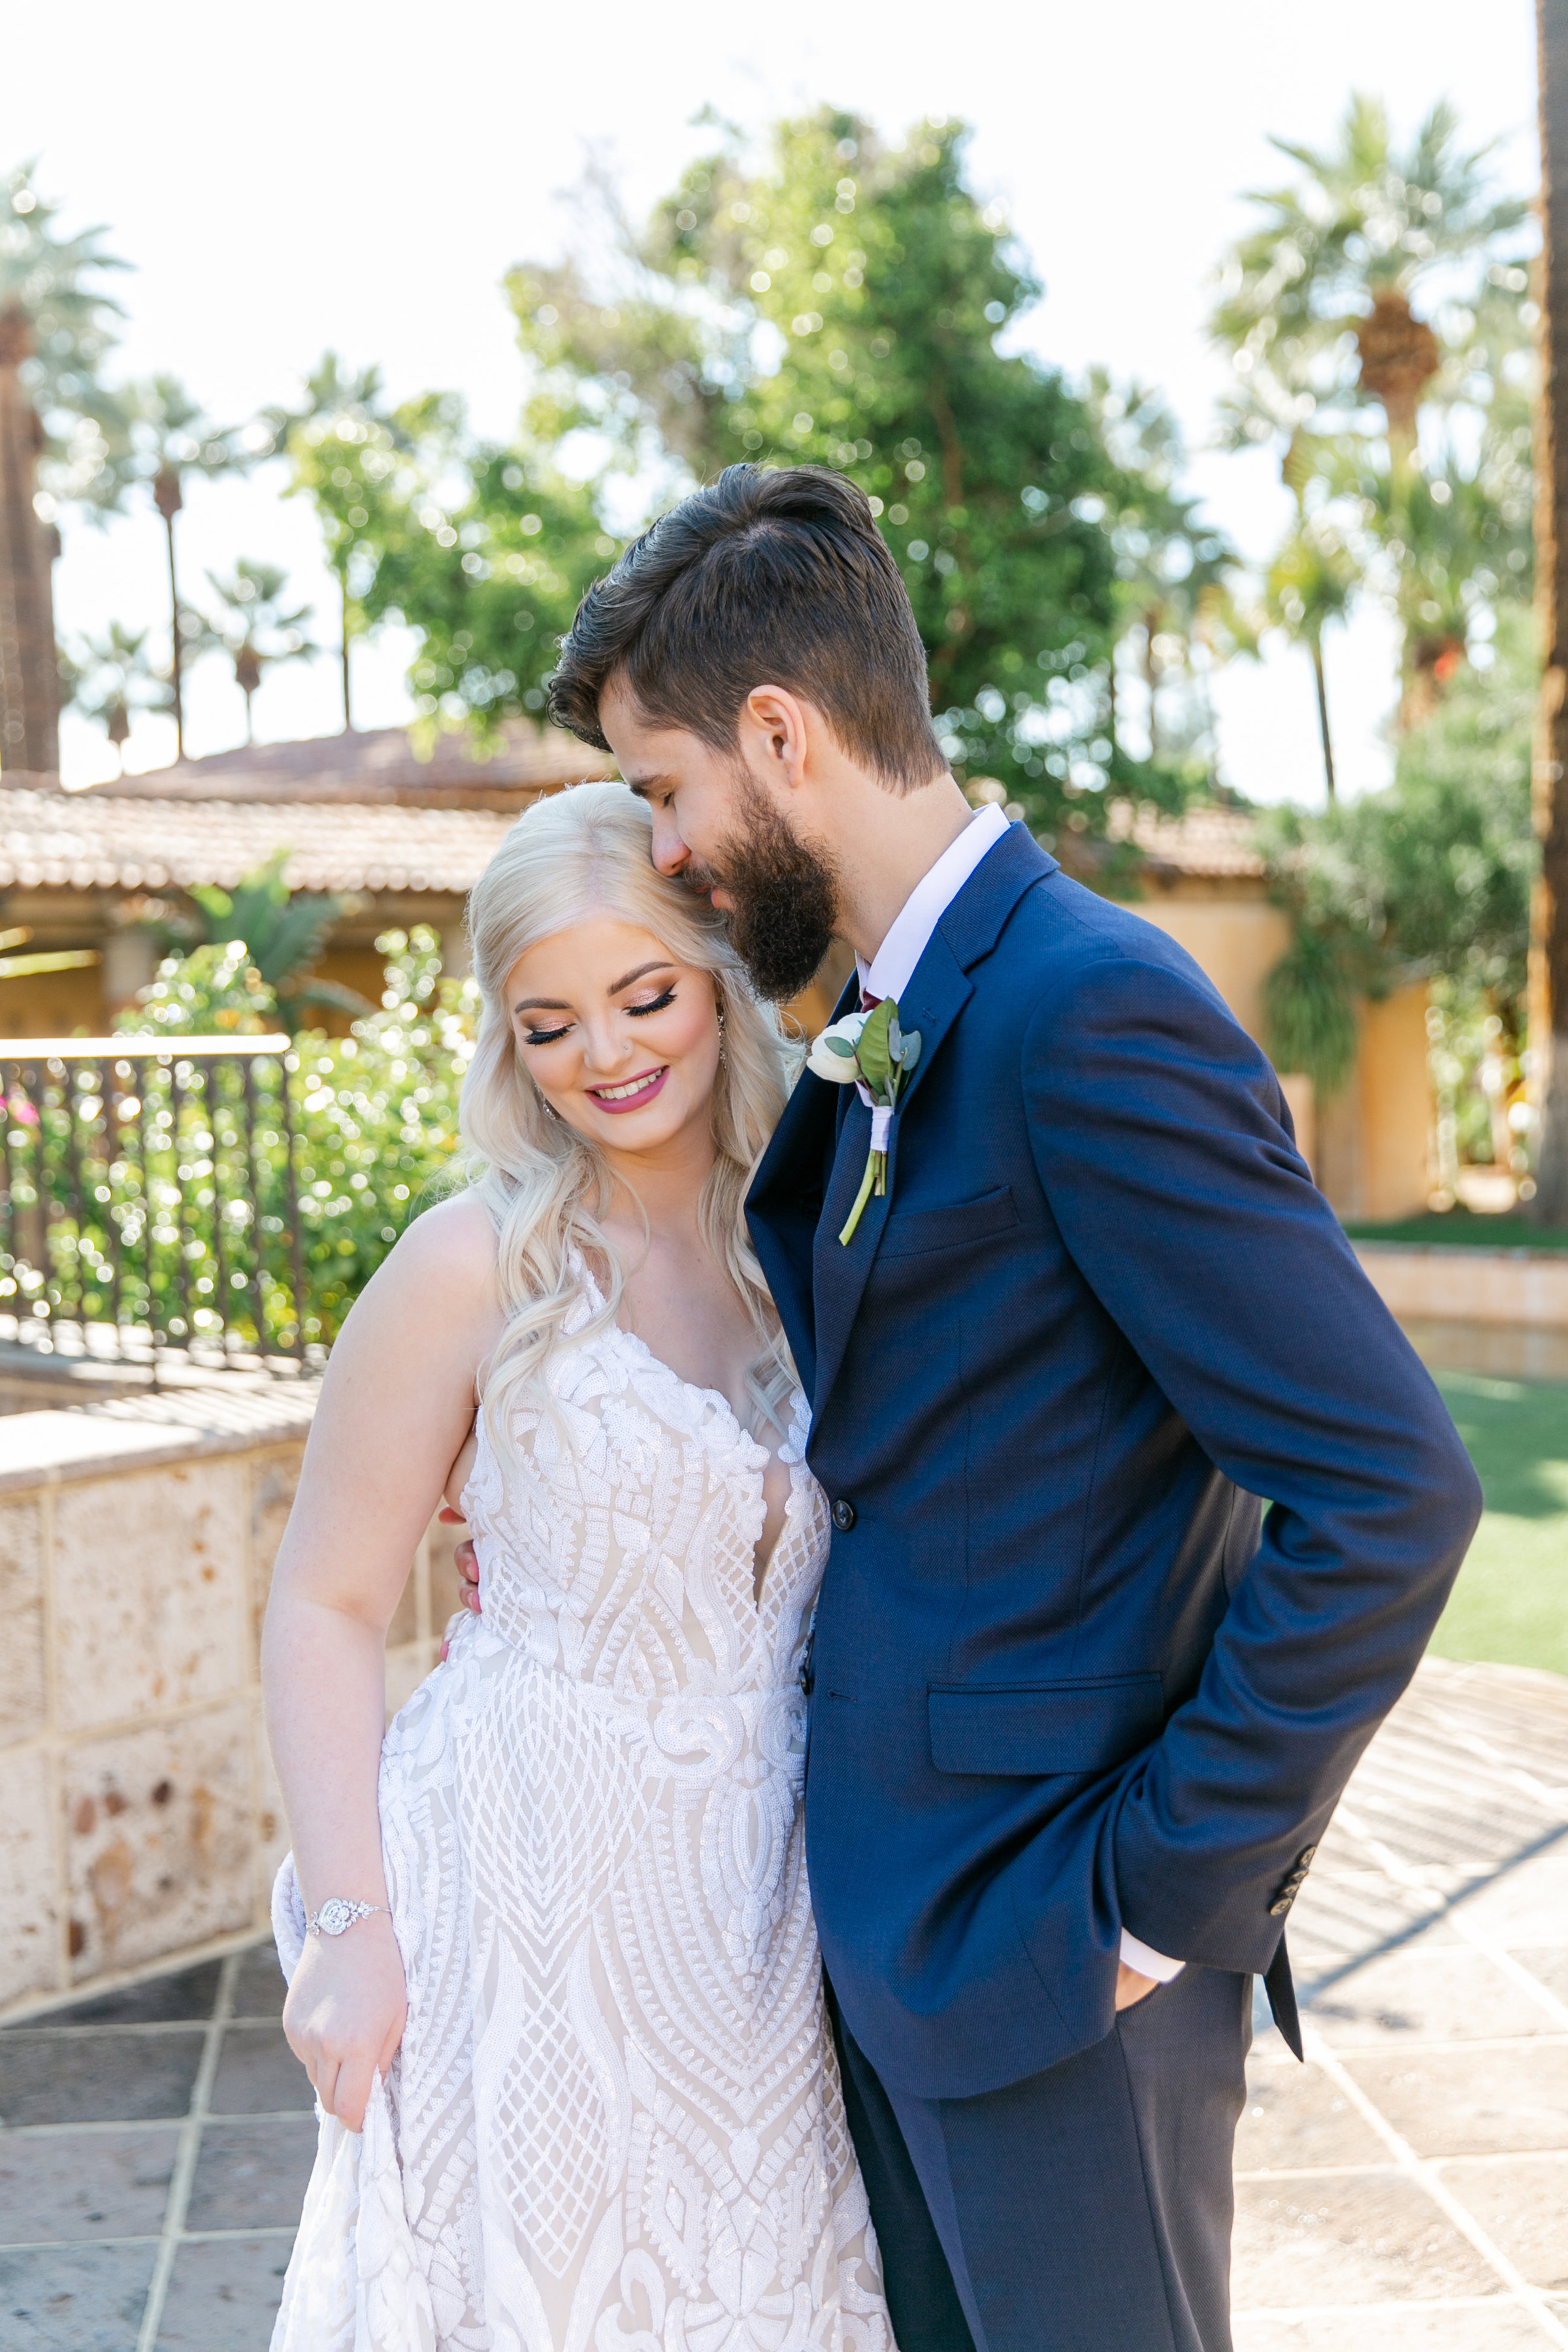 Karlie Colleen Photography - The Royal Palms Wedding - Some Like It Classic - Alex & Sam-129